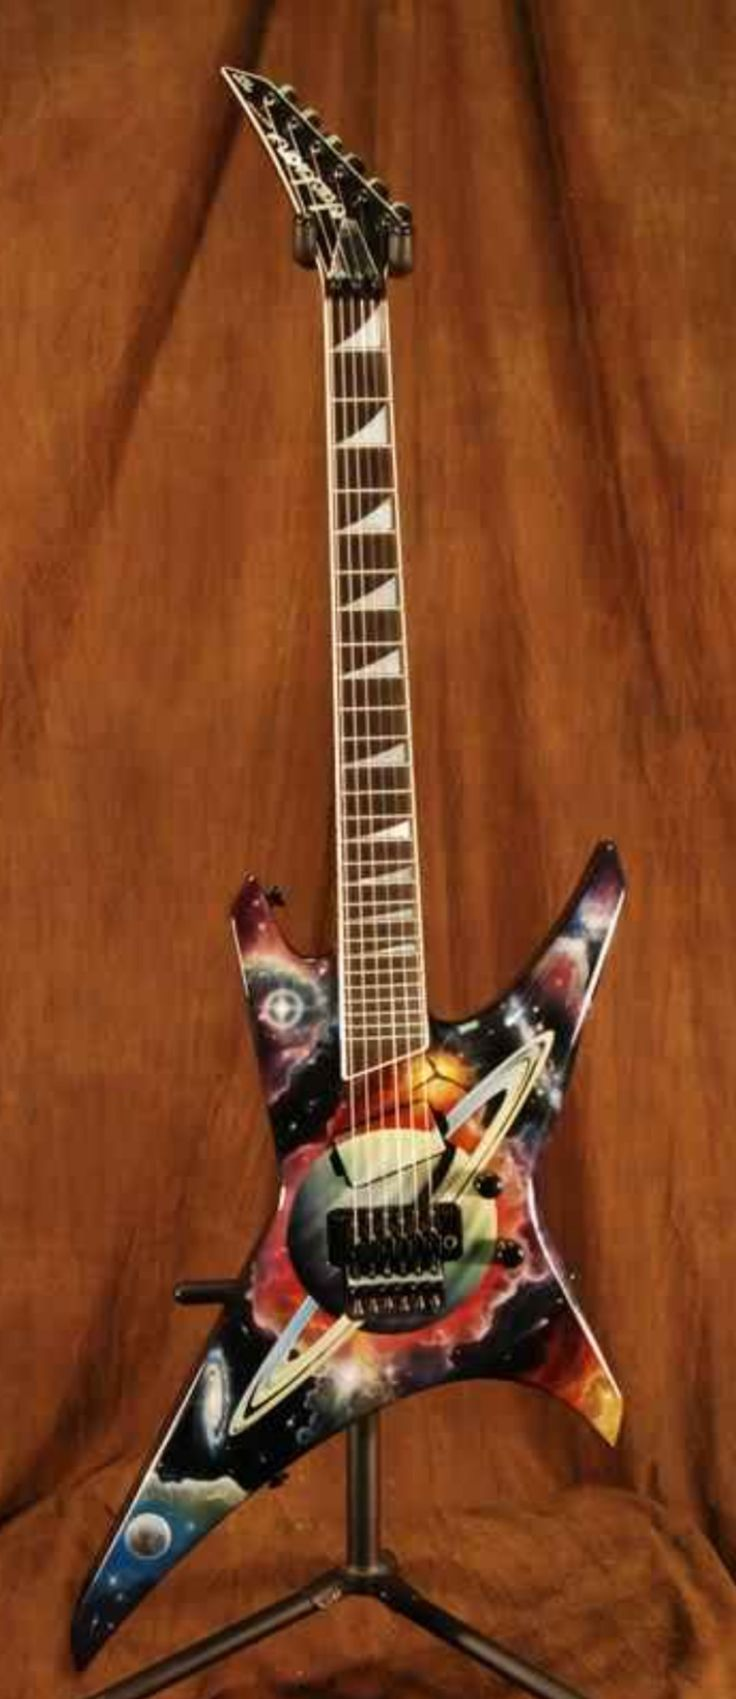 223 Best Guitars Images On Pinterest Custom And Emg 89 Wiring Http Wwwguitaristecom Forums Accessoiresetlutherie Find This Pin More By Kevin Bryant